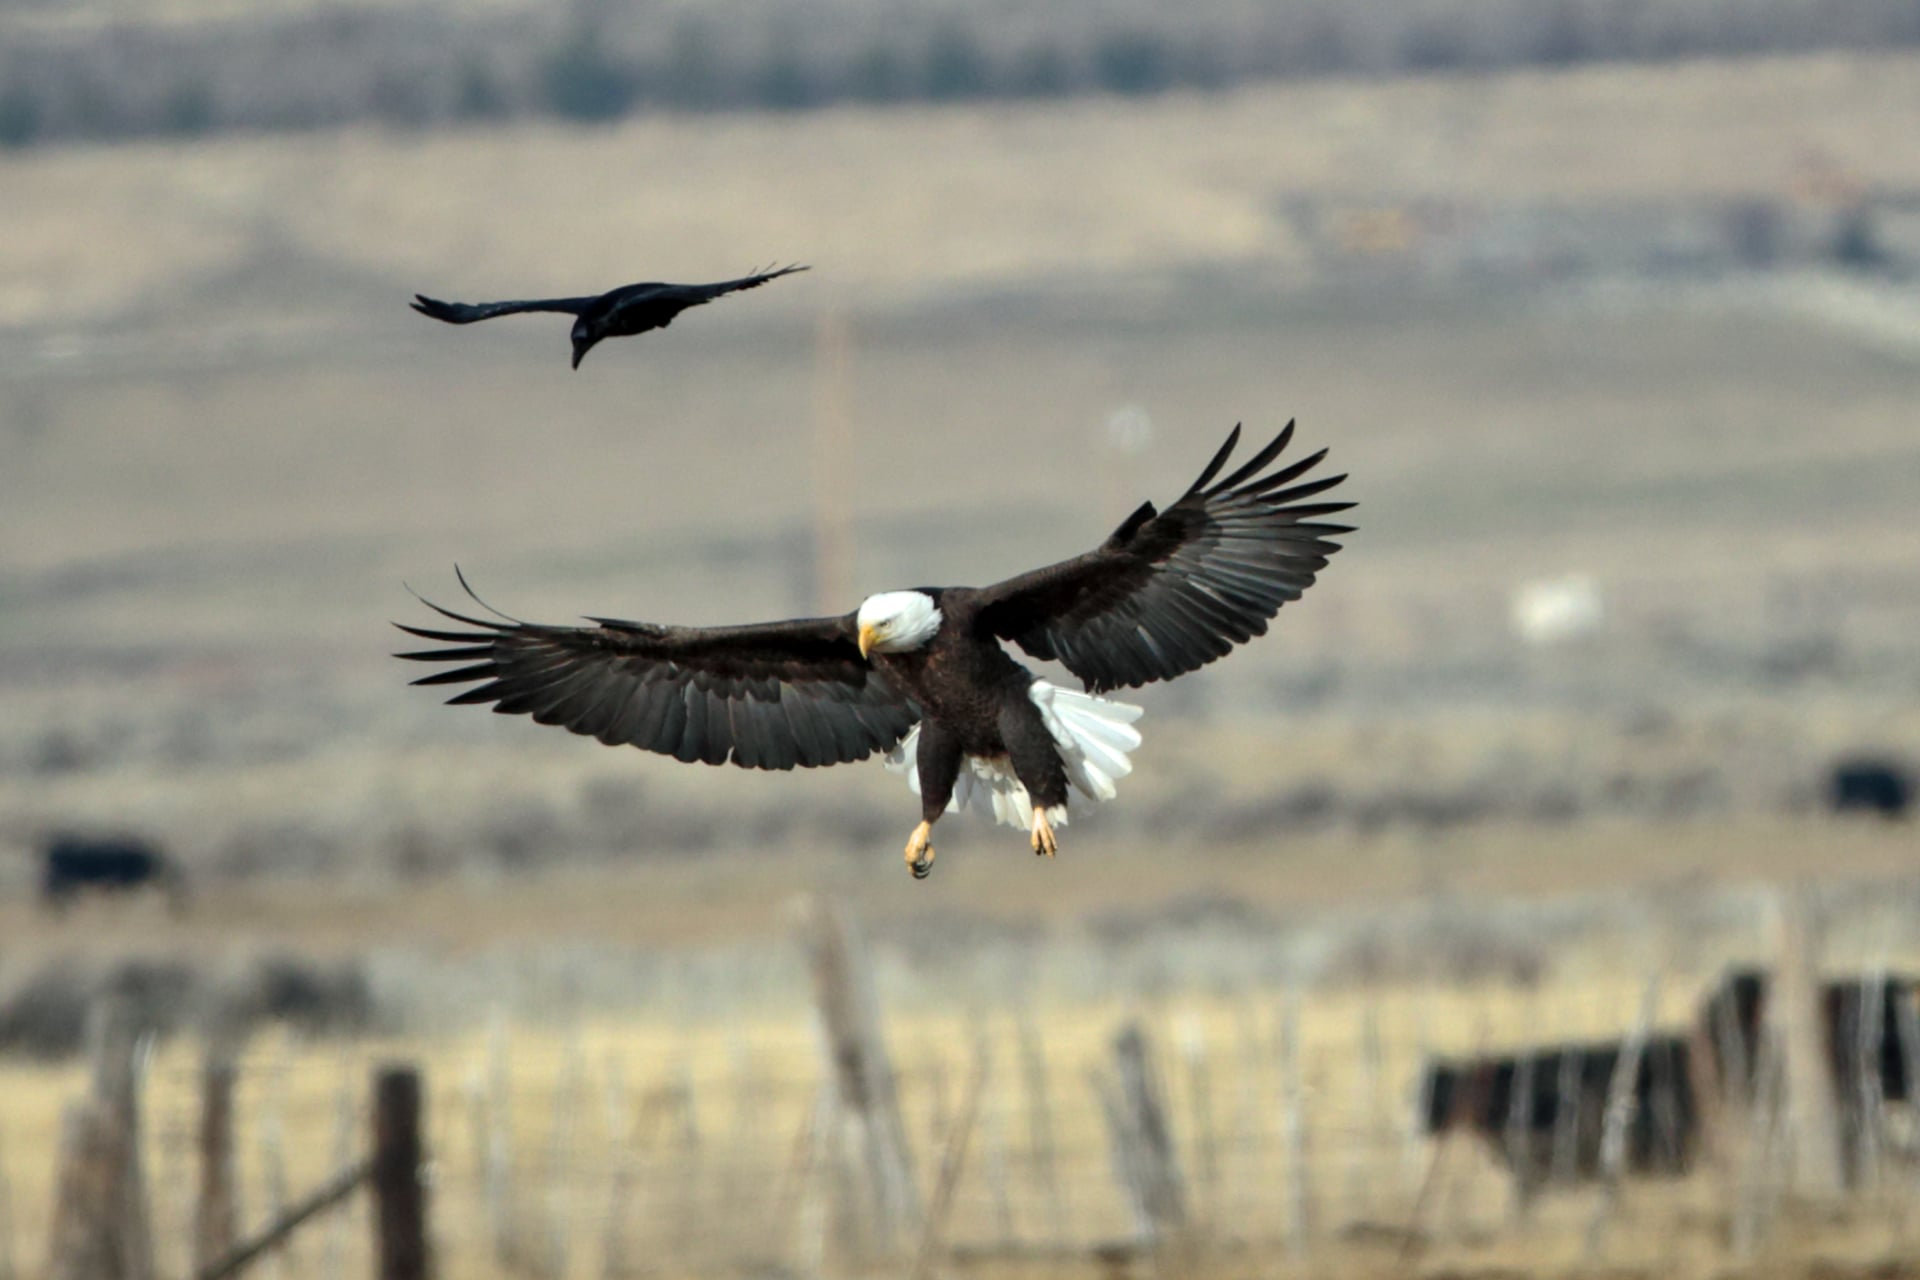 EAGLES & AG - Carson Valley Chamber of Commerce, NV